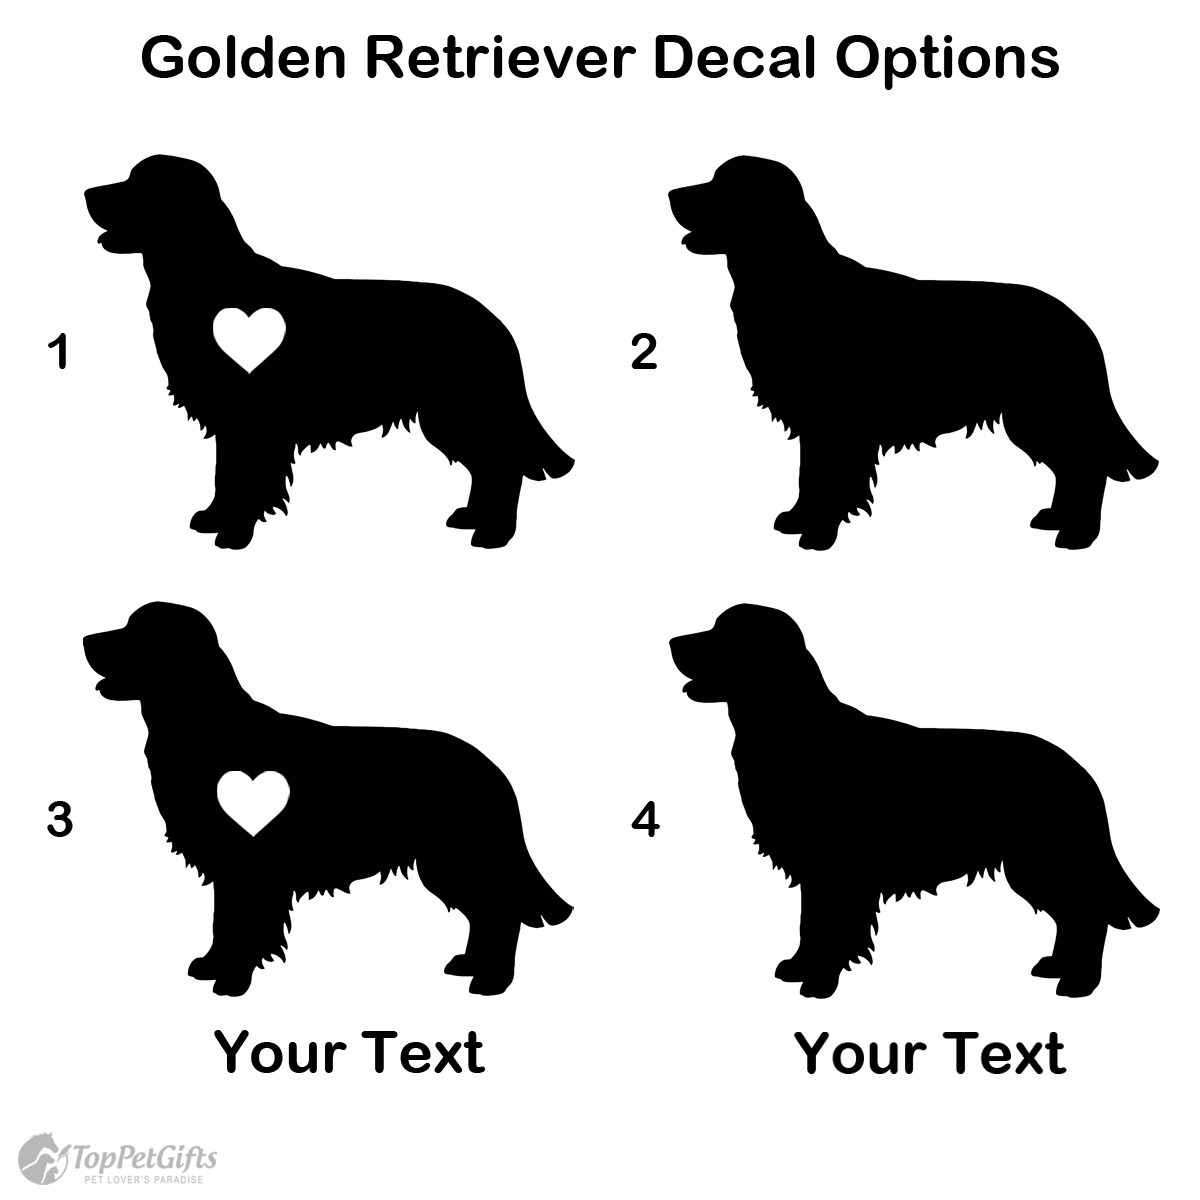 Personalized Golden Retriever Decal